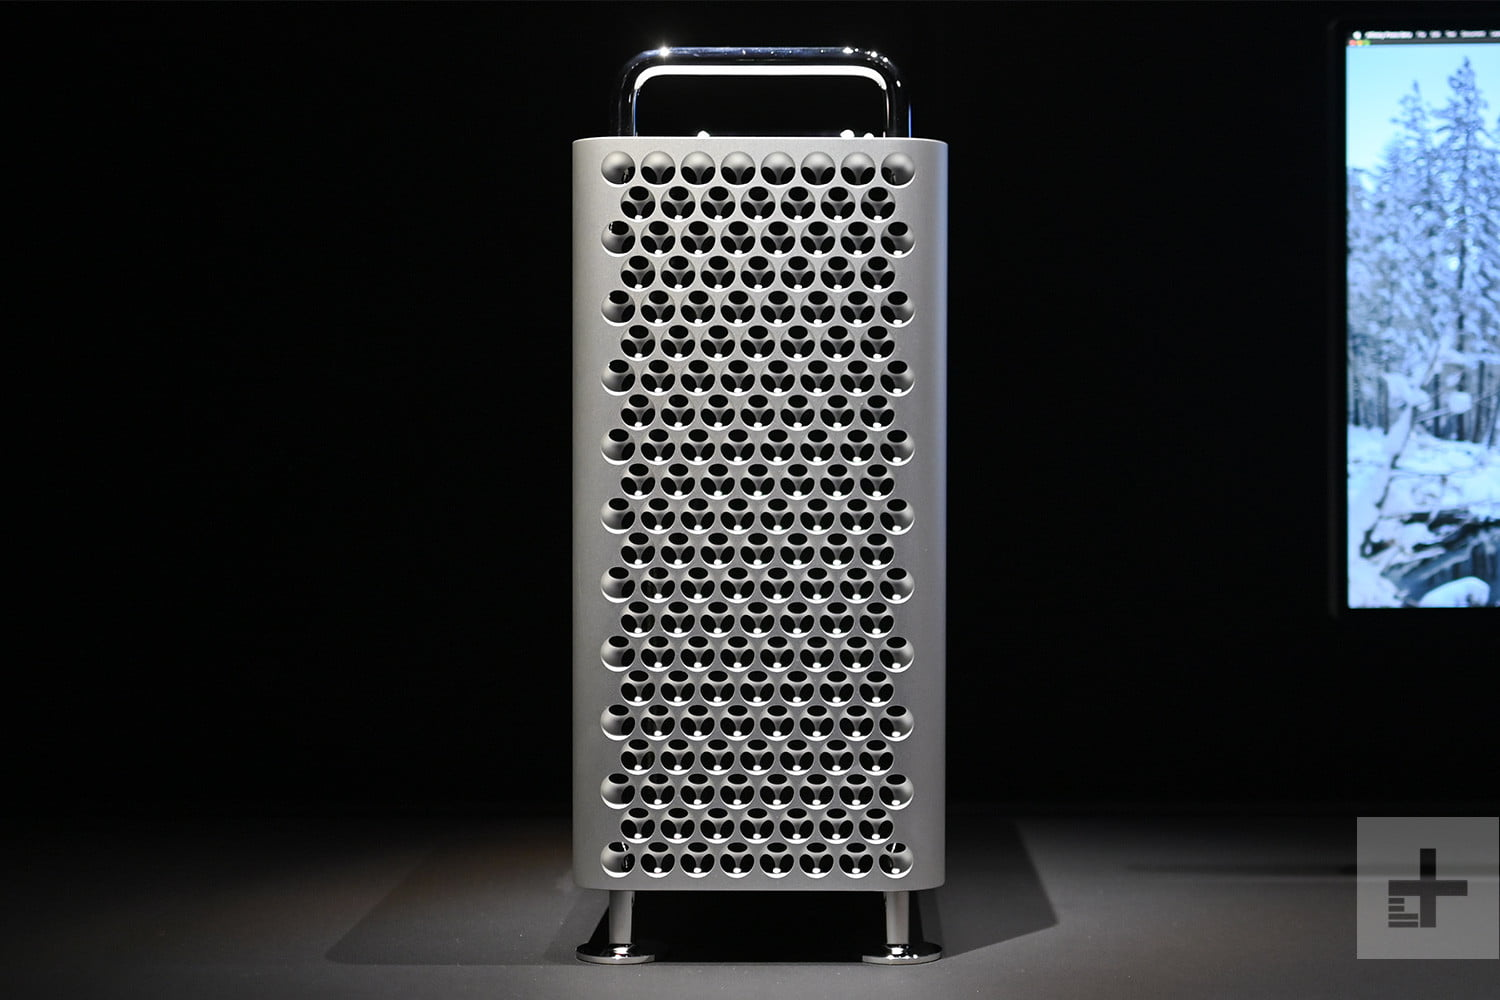 Only a few people have tested the new Mac Pro. Here's what they have to say